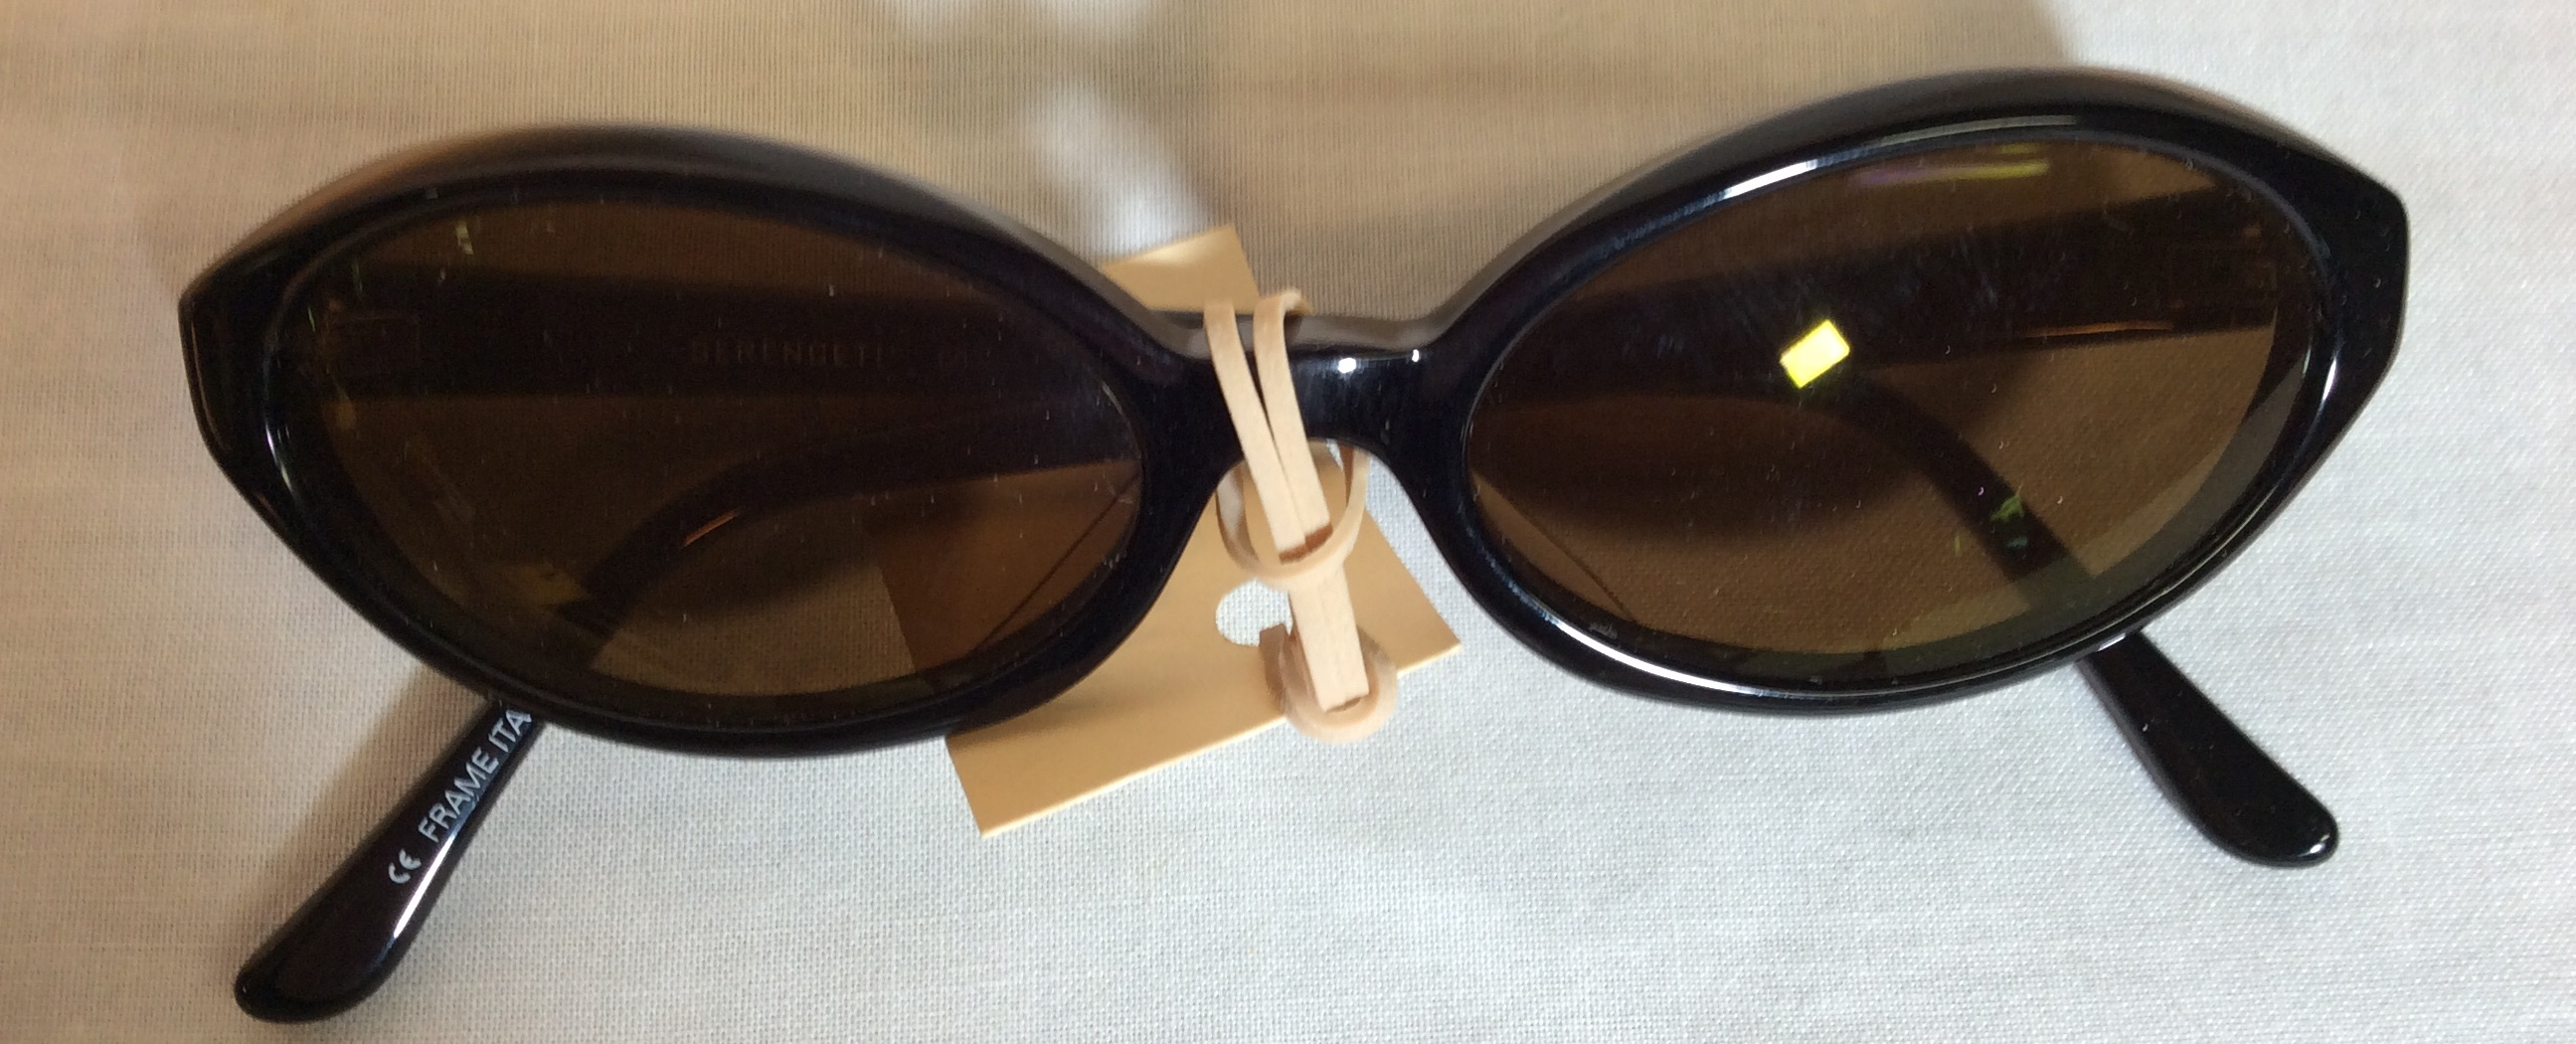 Black Oval Period Sunglasses